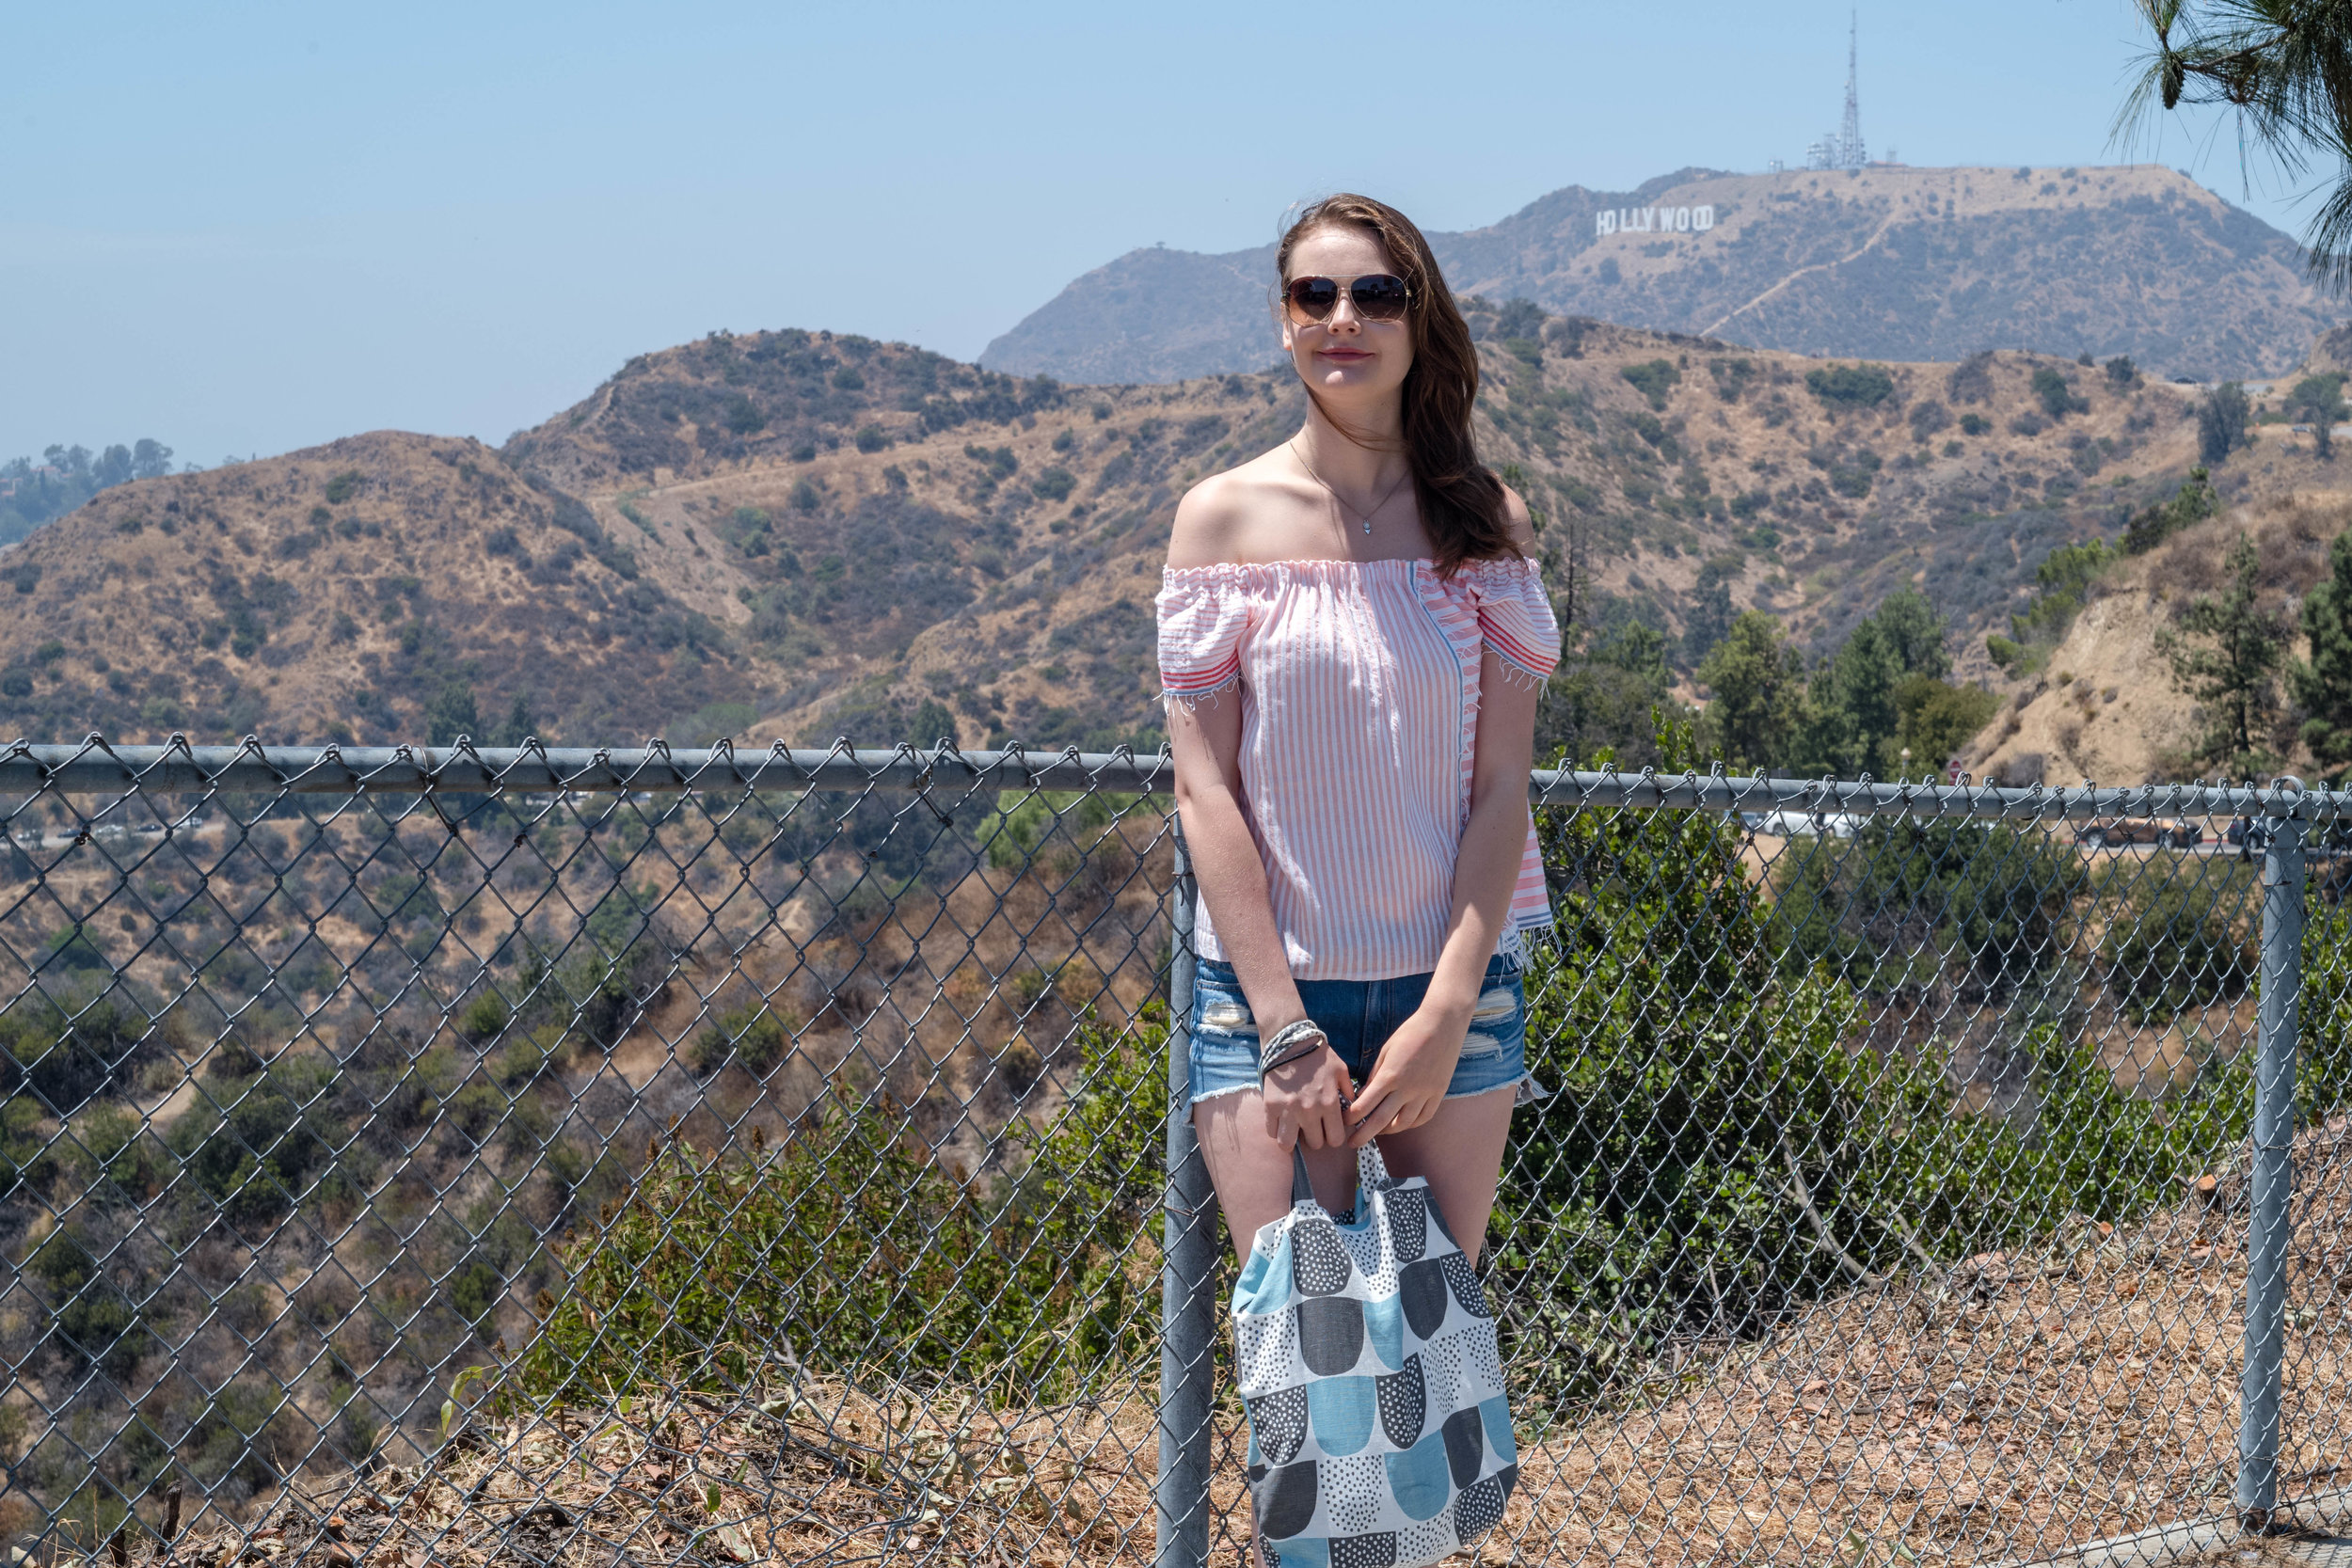 One of many attempt for proof of pilgrimage - Deliberate shot with Anna at the near limits of the depth of field and the Hollywood sign near the far limits - Leica APO 50mm f/2 Summicron ASPH